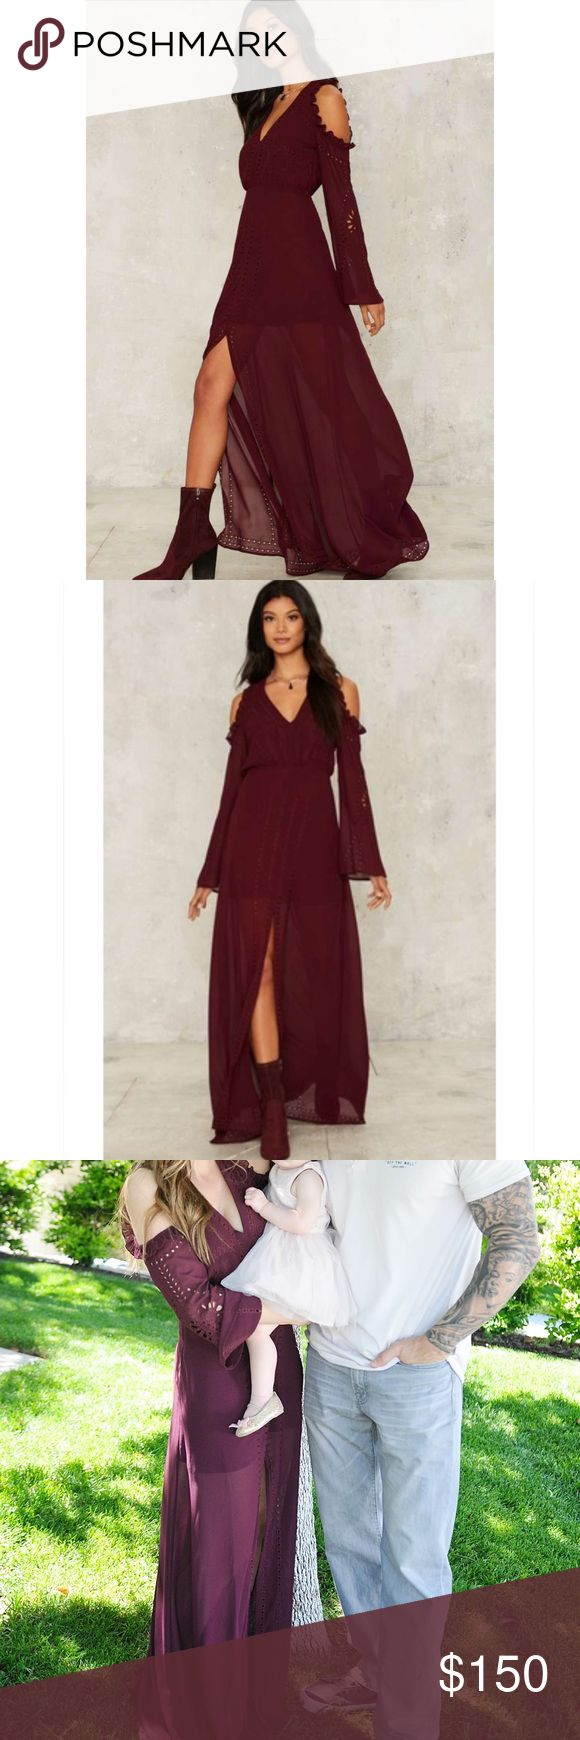 """Deep Maroon Foxiedox Brighton Maxi Dress Pre-owned, worn for my daughters first birthday. Literally brand new and in perfect condition. I still have the tags- just not attached. Size XS- but I fit it perfectly. I'm 5'4"""", 119lb 34D. Can fit a XS up to small medium. So beautiful for any special event. The color was listed as """"red"""" but it's a deep maroon shade in person. Very well made and so beautiful on. I paid $205 total for this dress- please do not lowball me. foxiedox Dresses Maxi"""